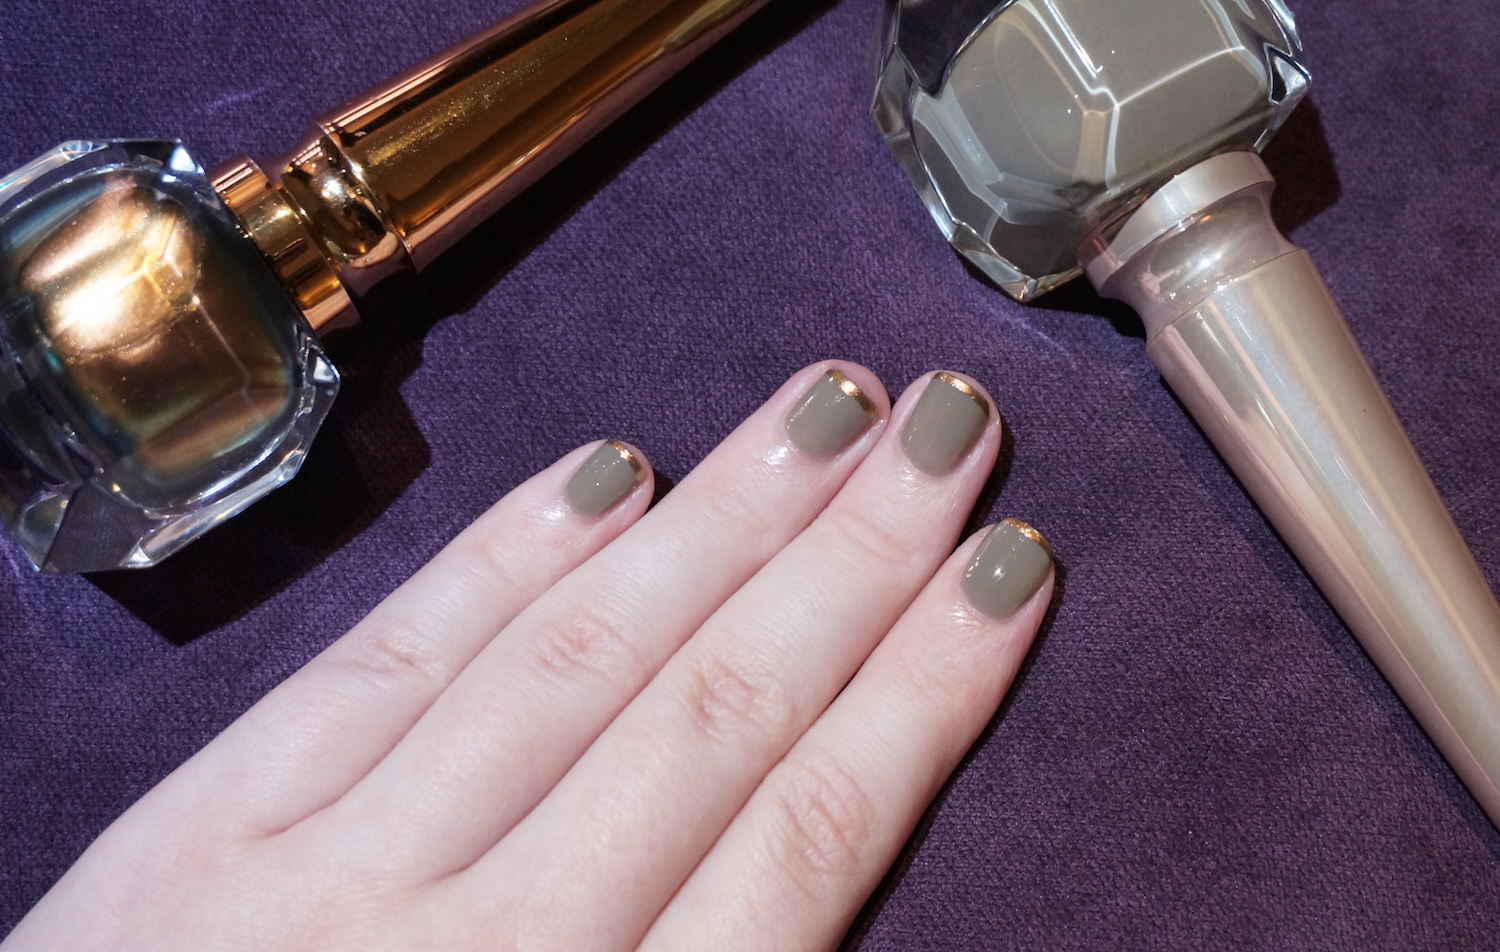 The Nail Library Christian Louboutin manicure review – a chic treat ...